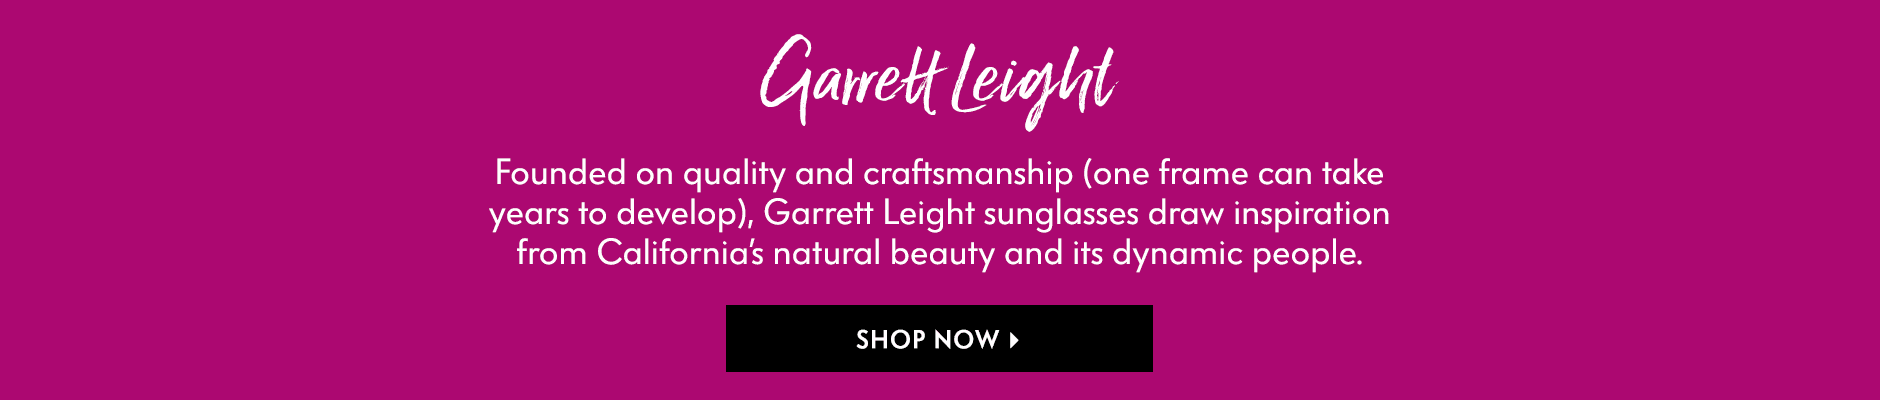 Garrett Leight - Founded on quality and craftsmanship (one frame can take years to develop), Garrett Leight sunglasses draw inspiration from California???s natural beauty and its dynamic people.